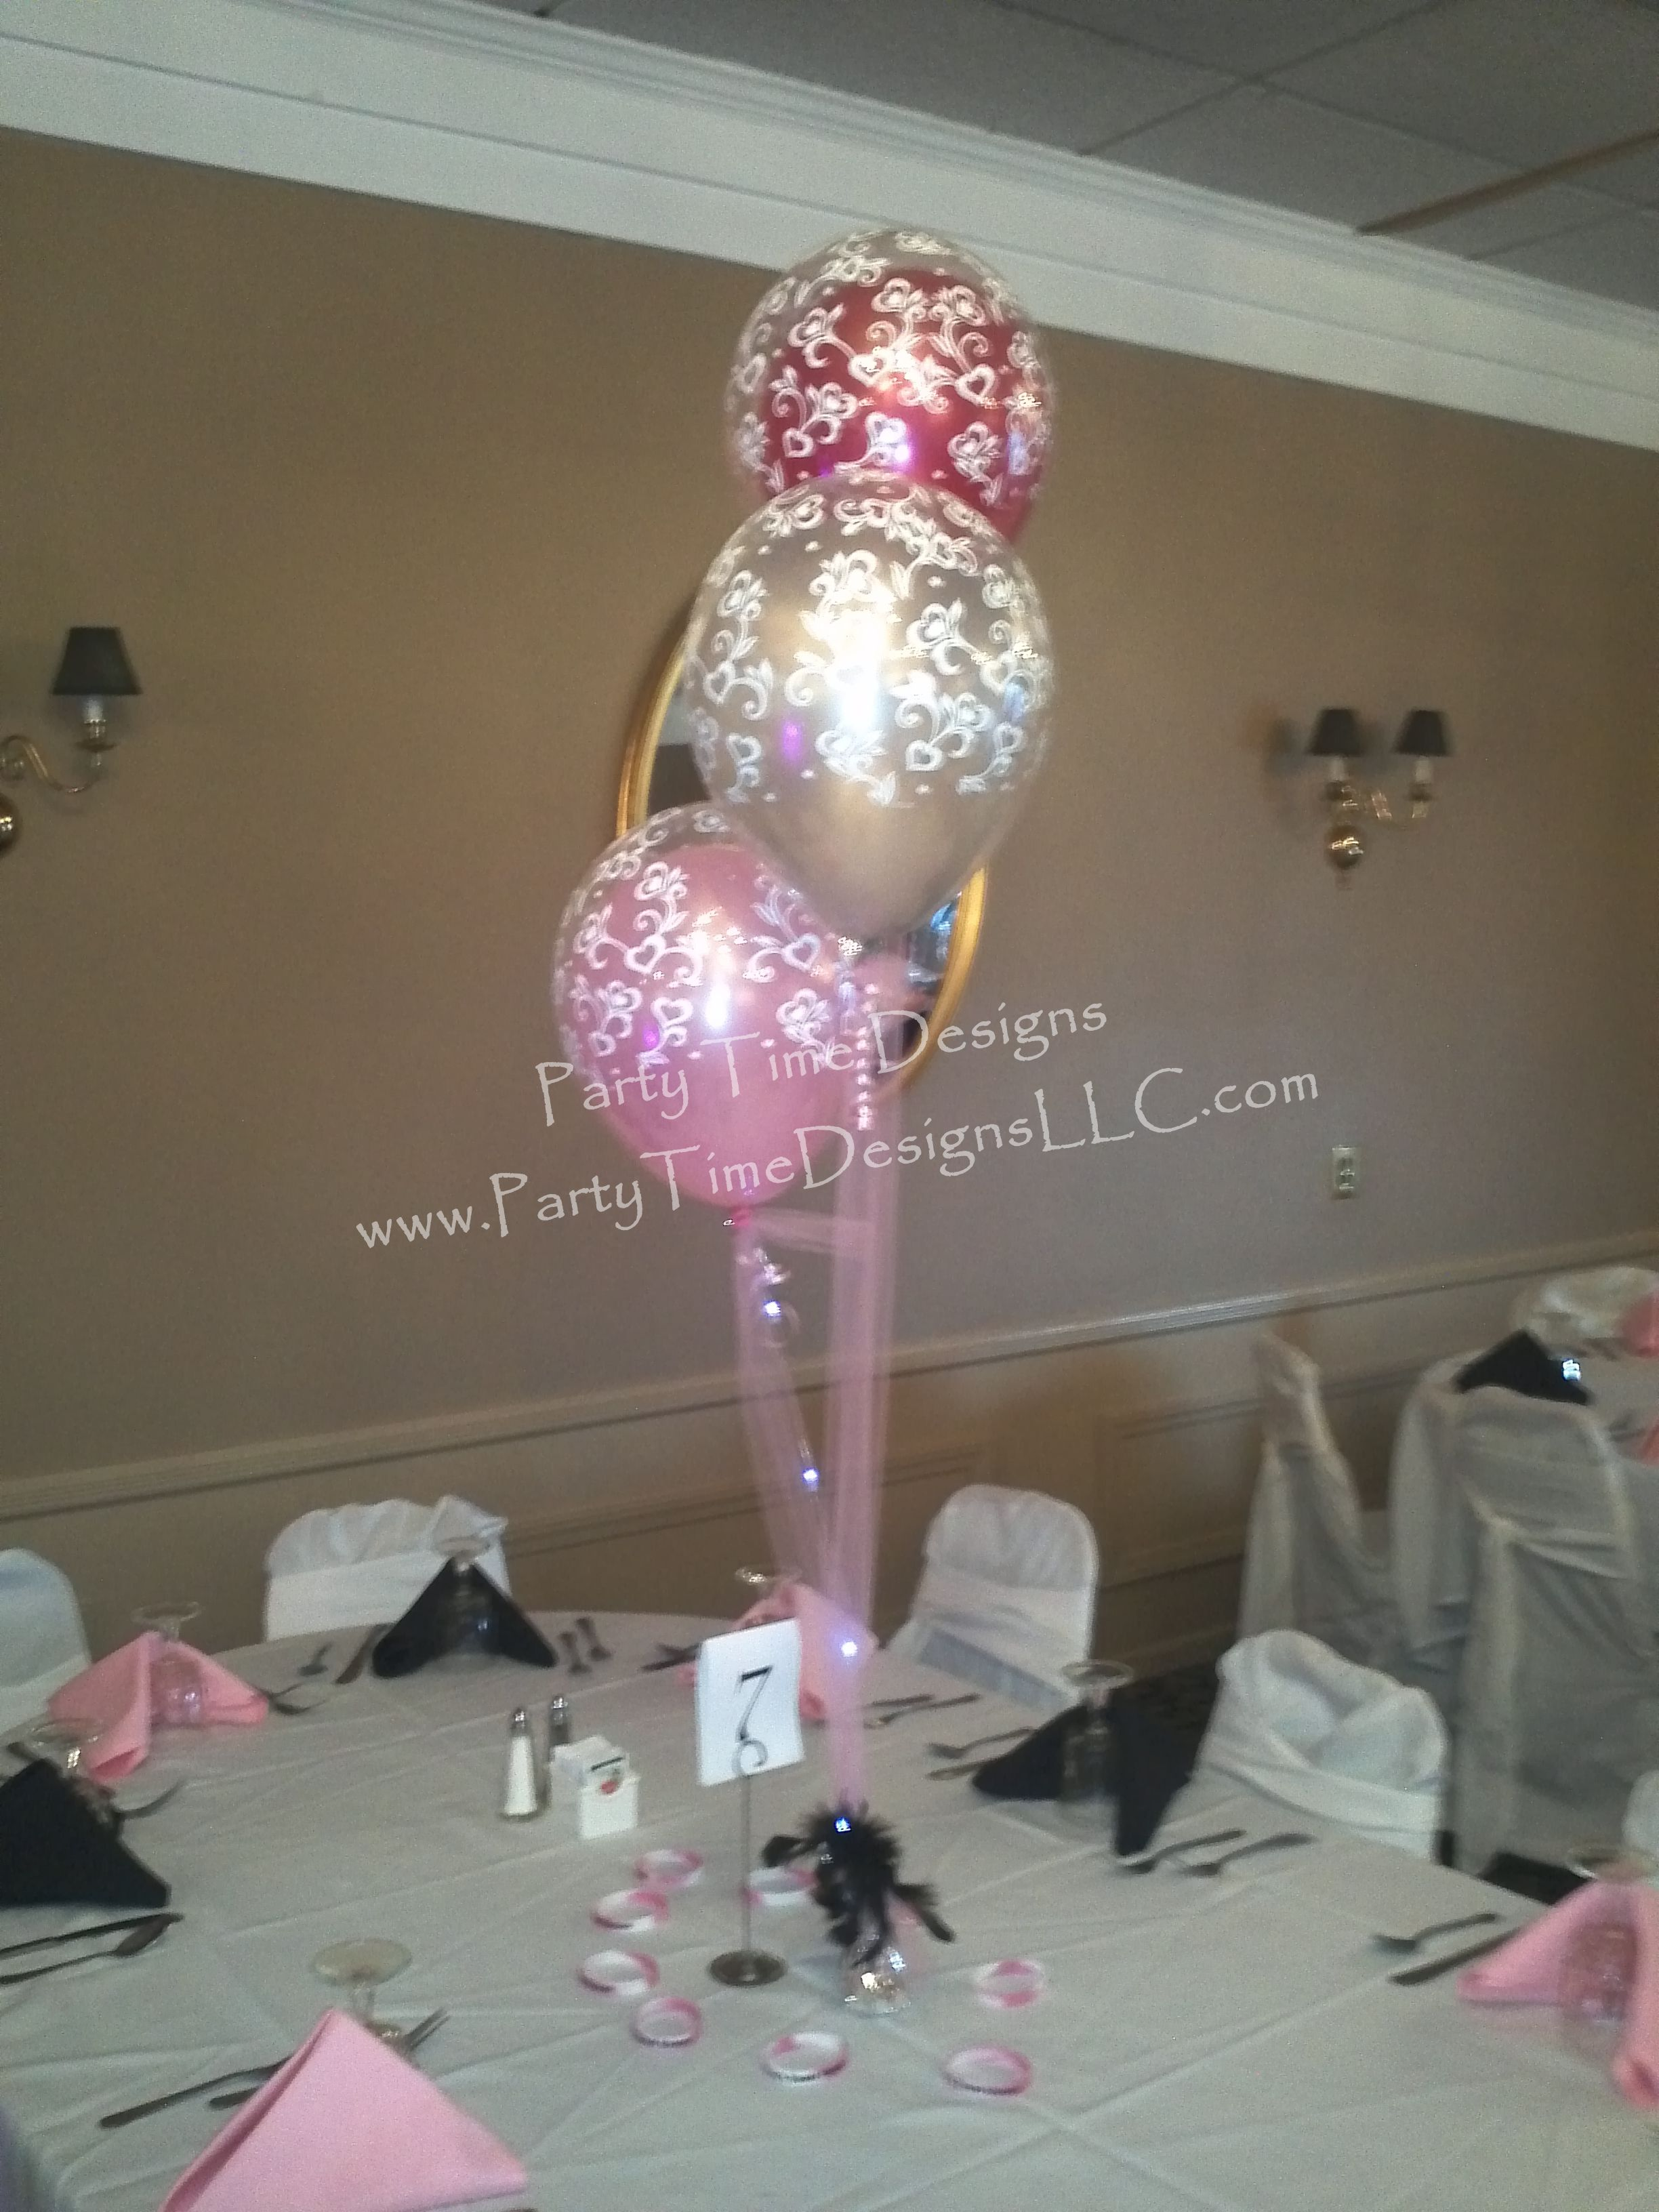 Double balloon centerpieces sweet 16 pinterest for Balloon decoration ideas for sweet 16